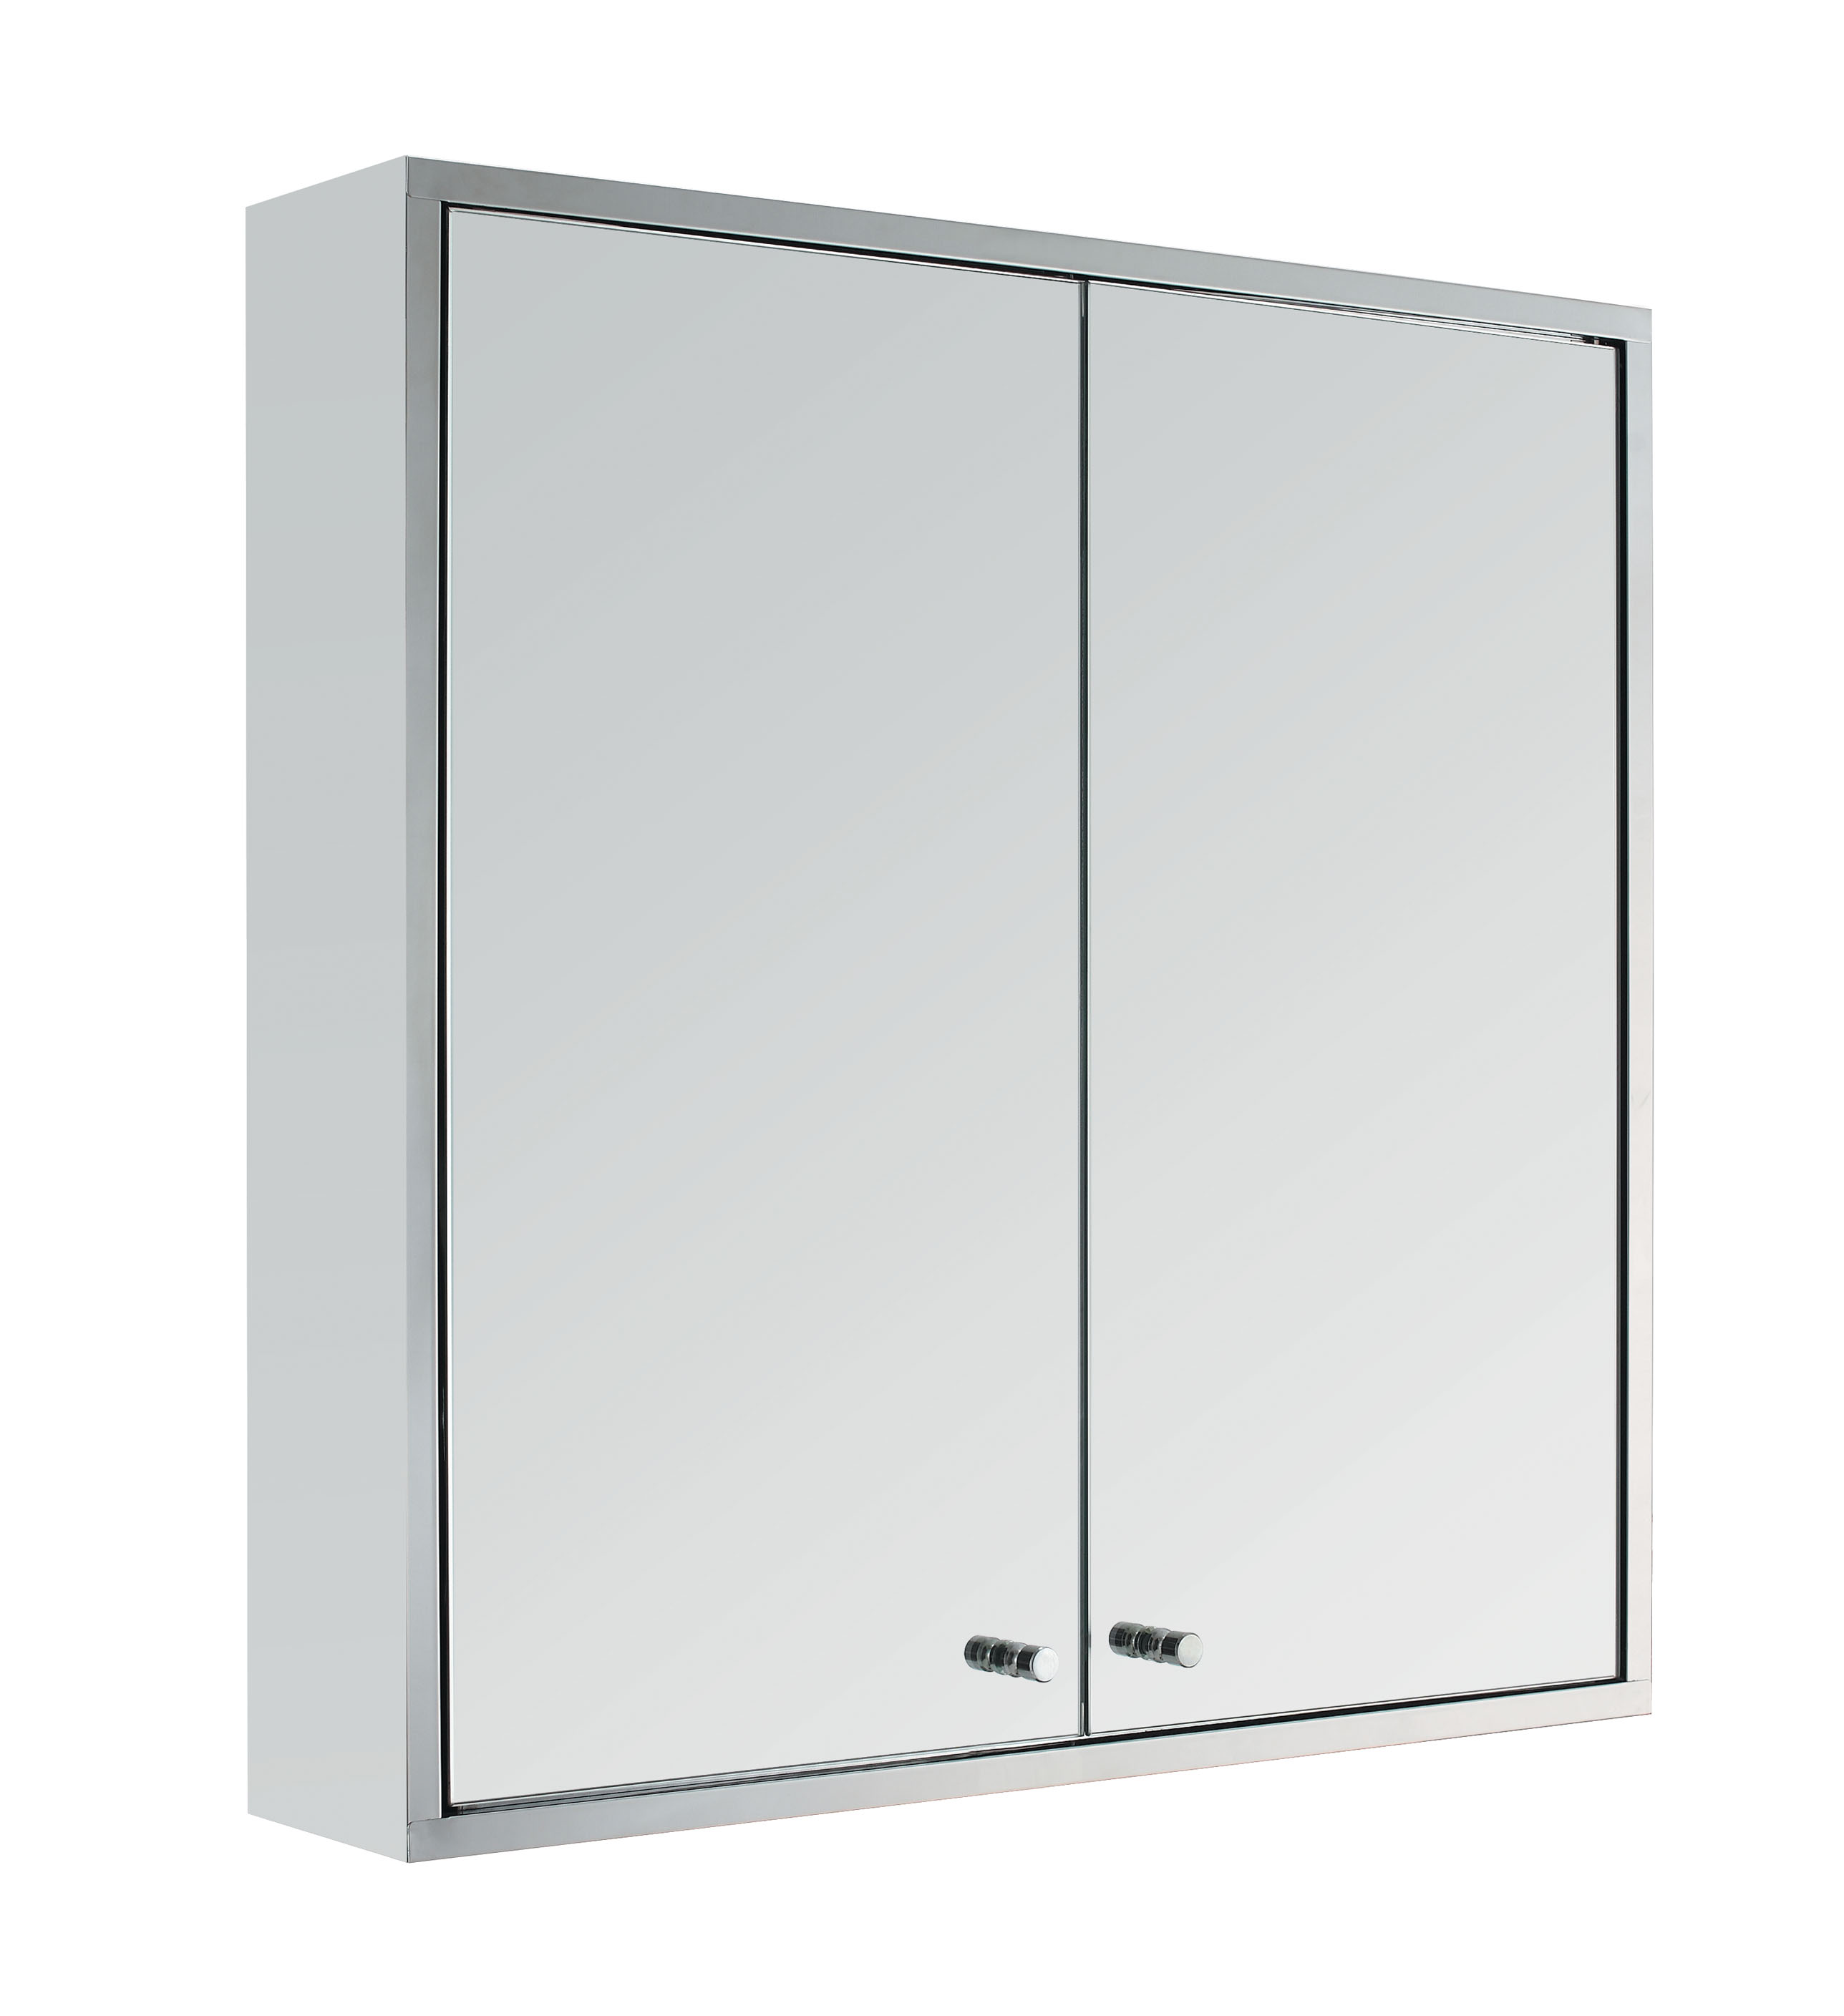 Sentinel Stainless Steel Double Door Wall Mount Bathroom Cabinet Storage Cupboard Mirror